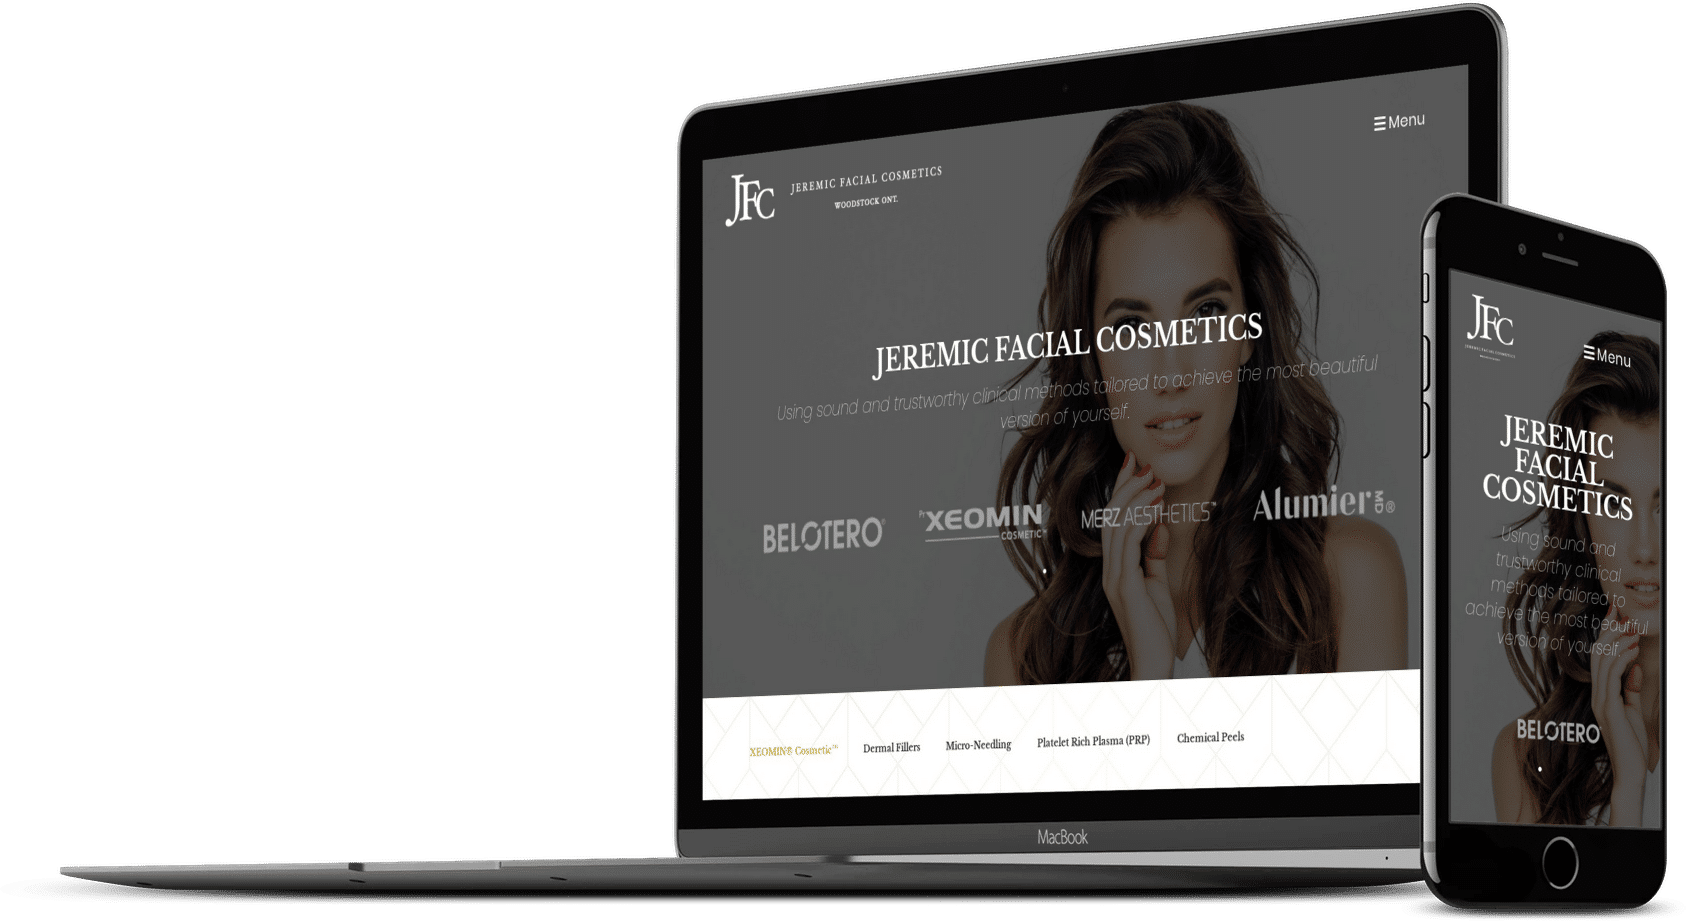 Jeremic Facial Cosmetics Website